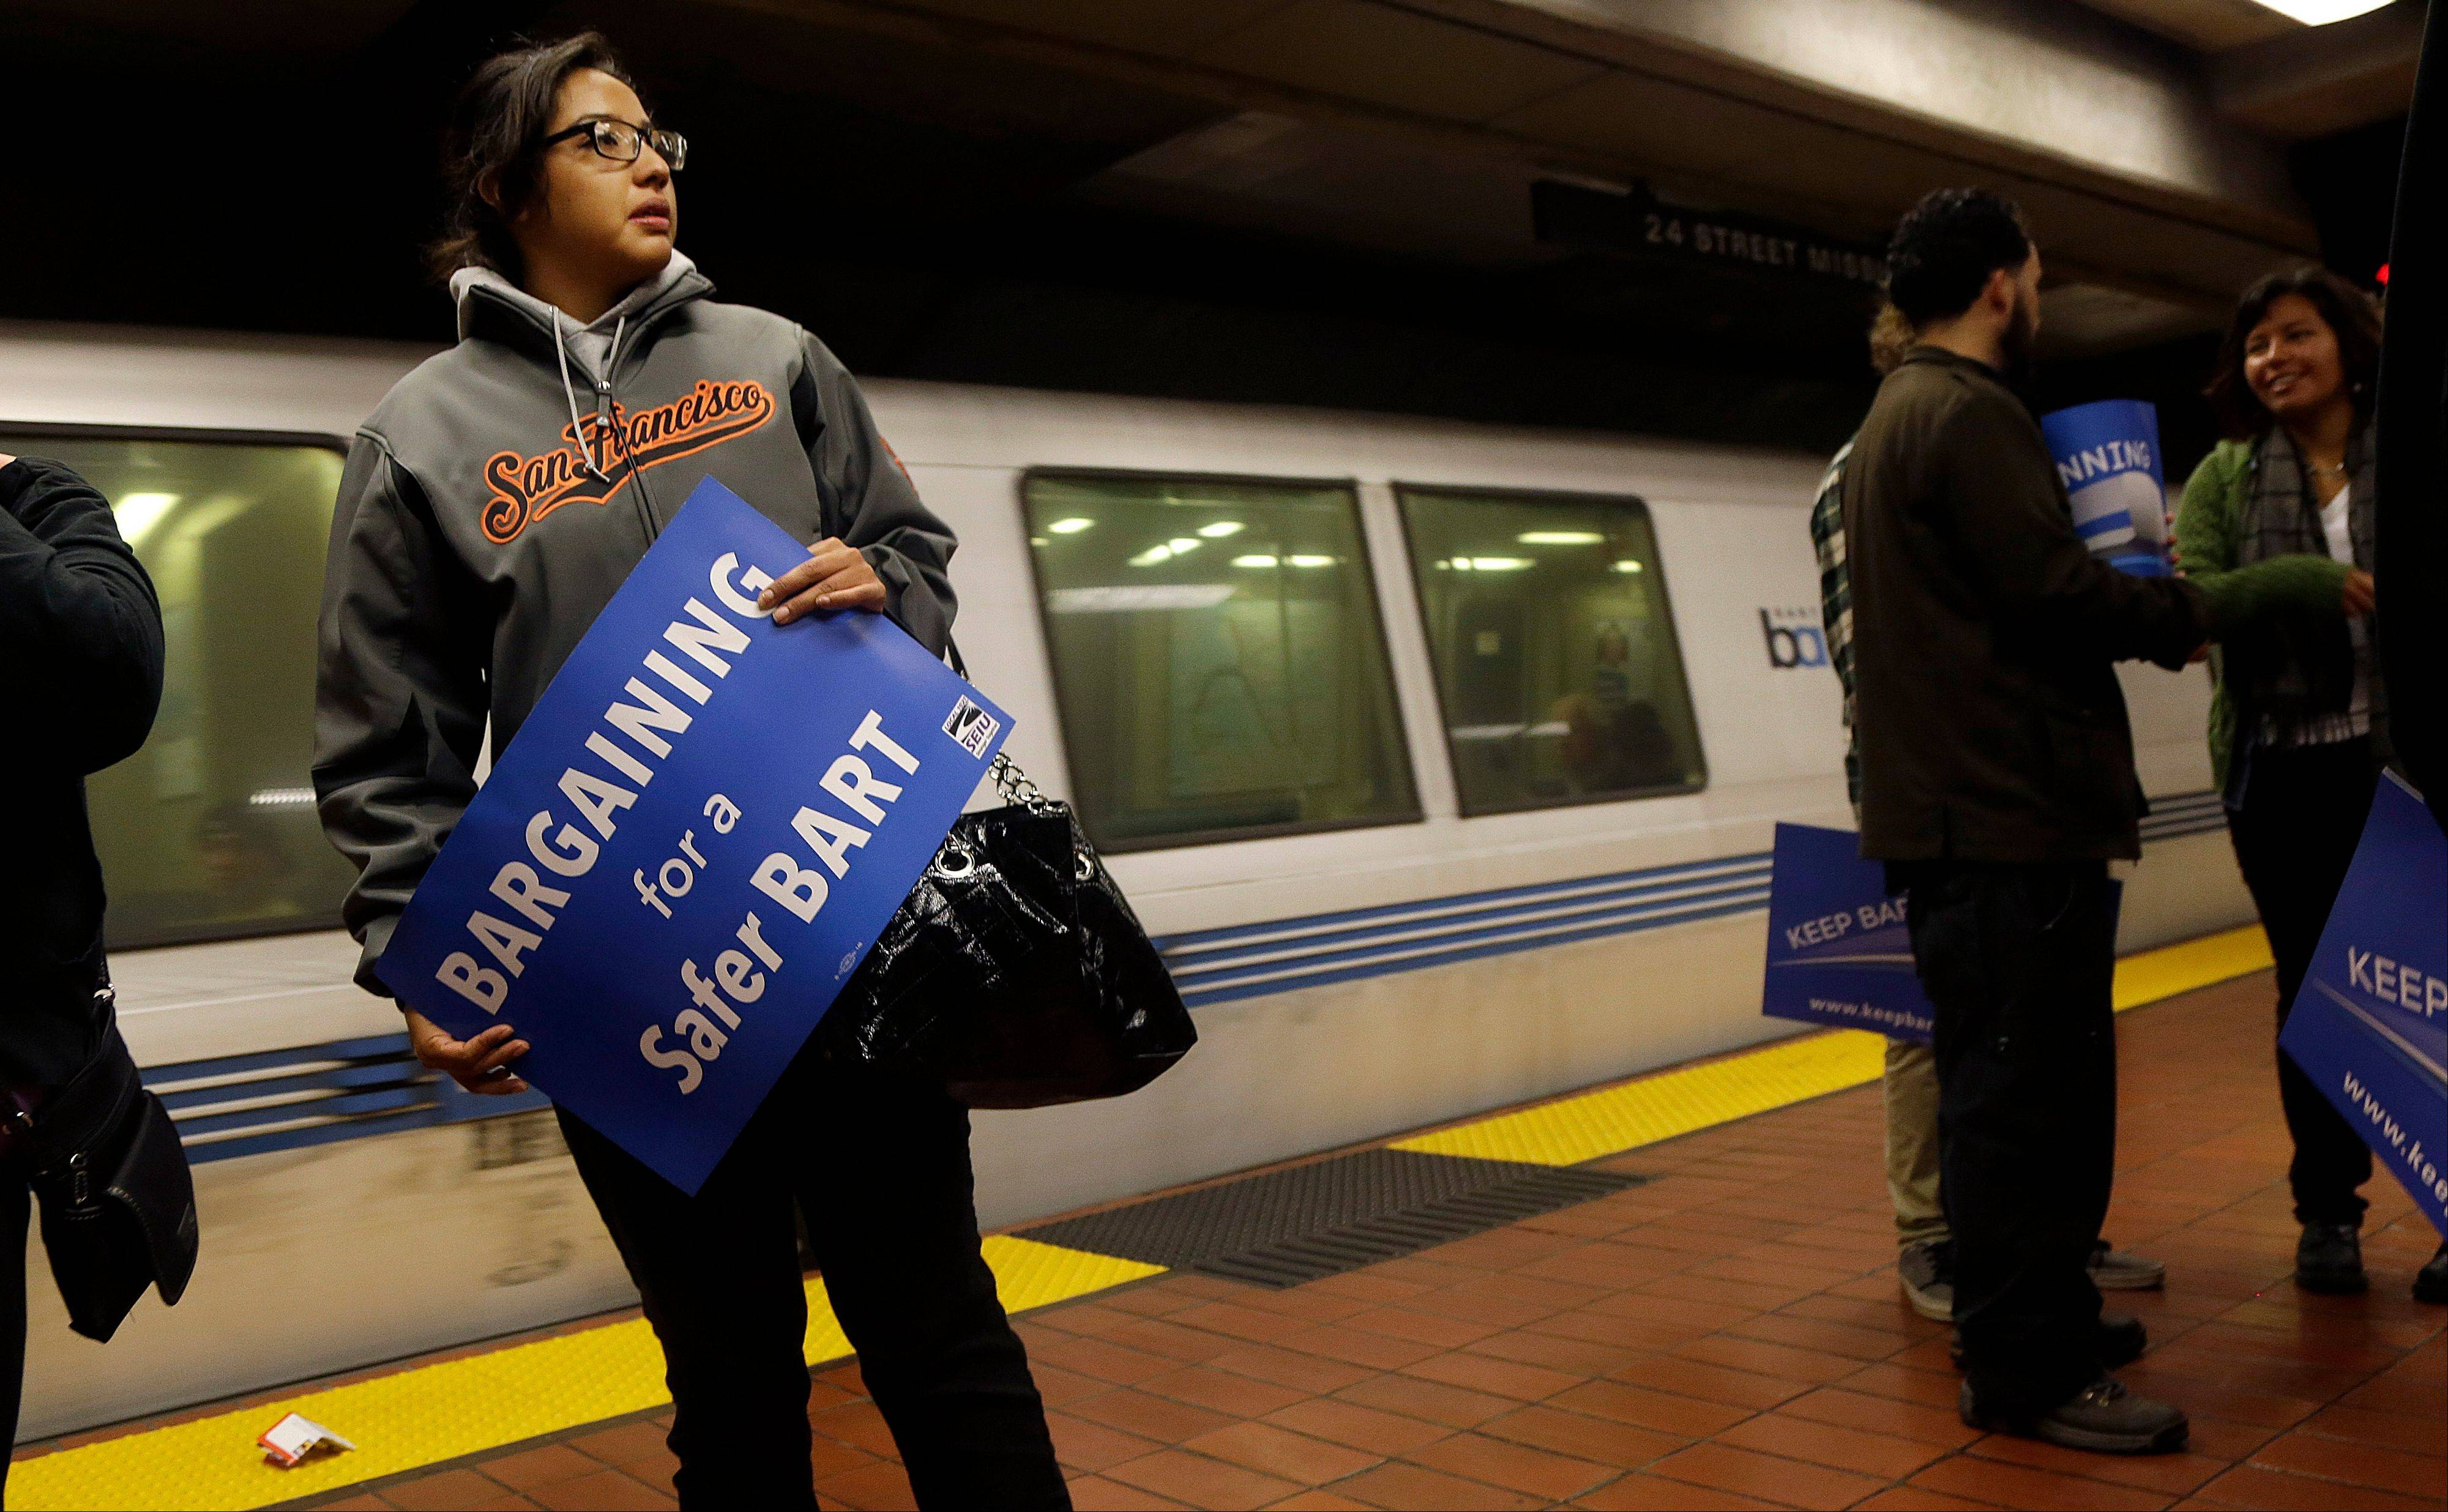 Early Monday, two of San Francisco Bay Area Rapid Transit�s largest unions went on strike after weekend talks with management failed to produce a new contract.